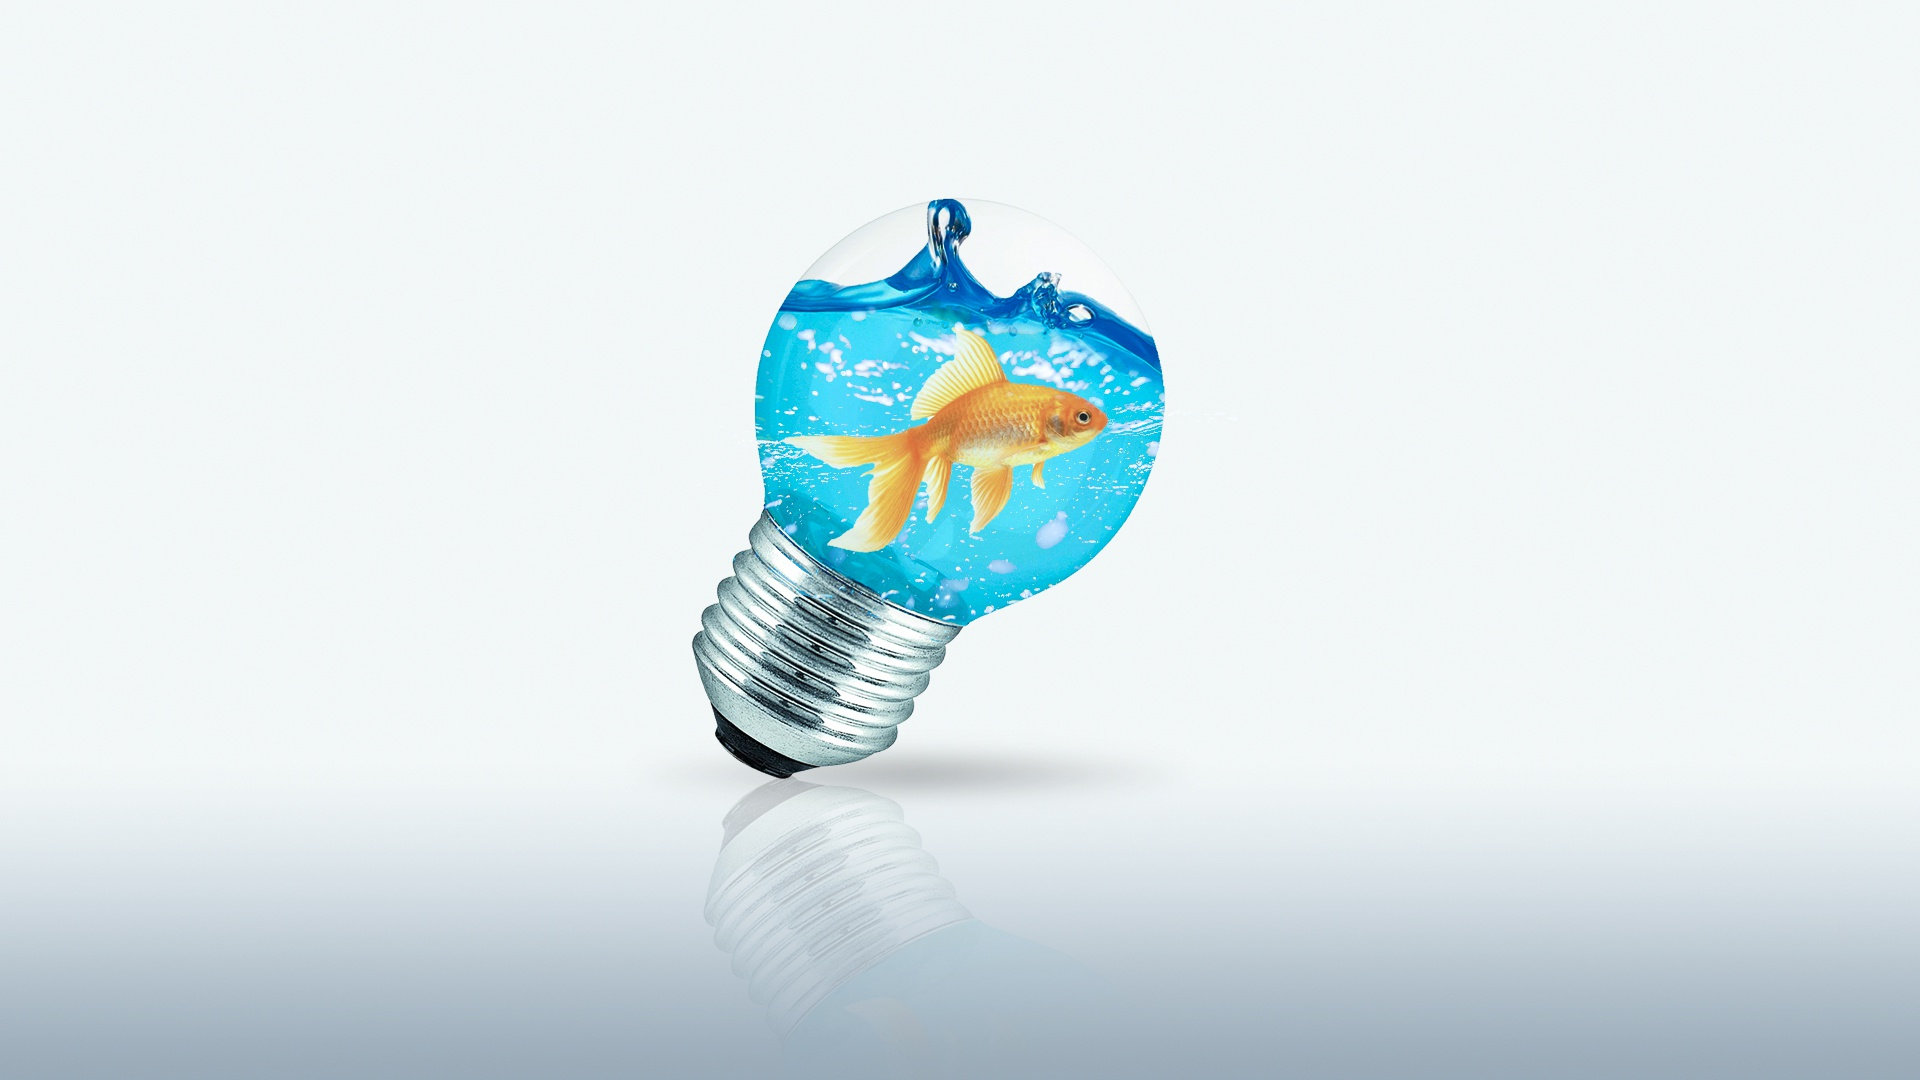 Wallpaper Fish Light bulb Creative Water